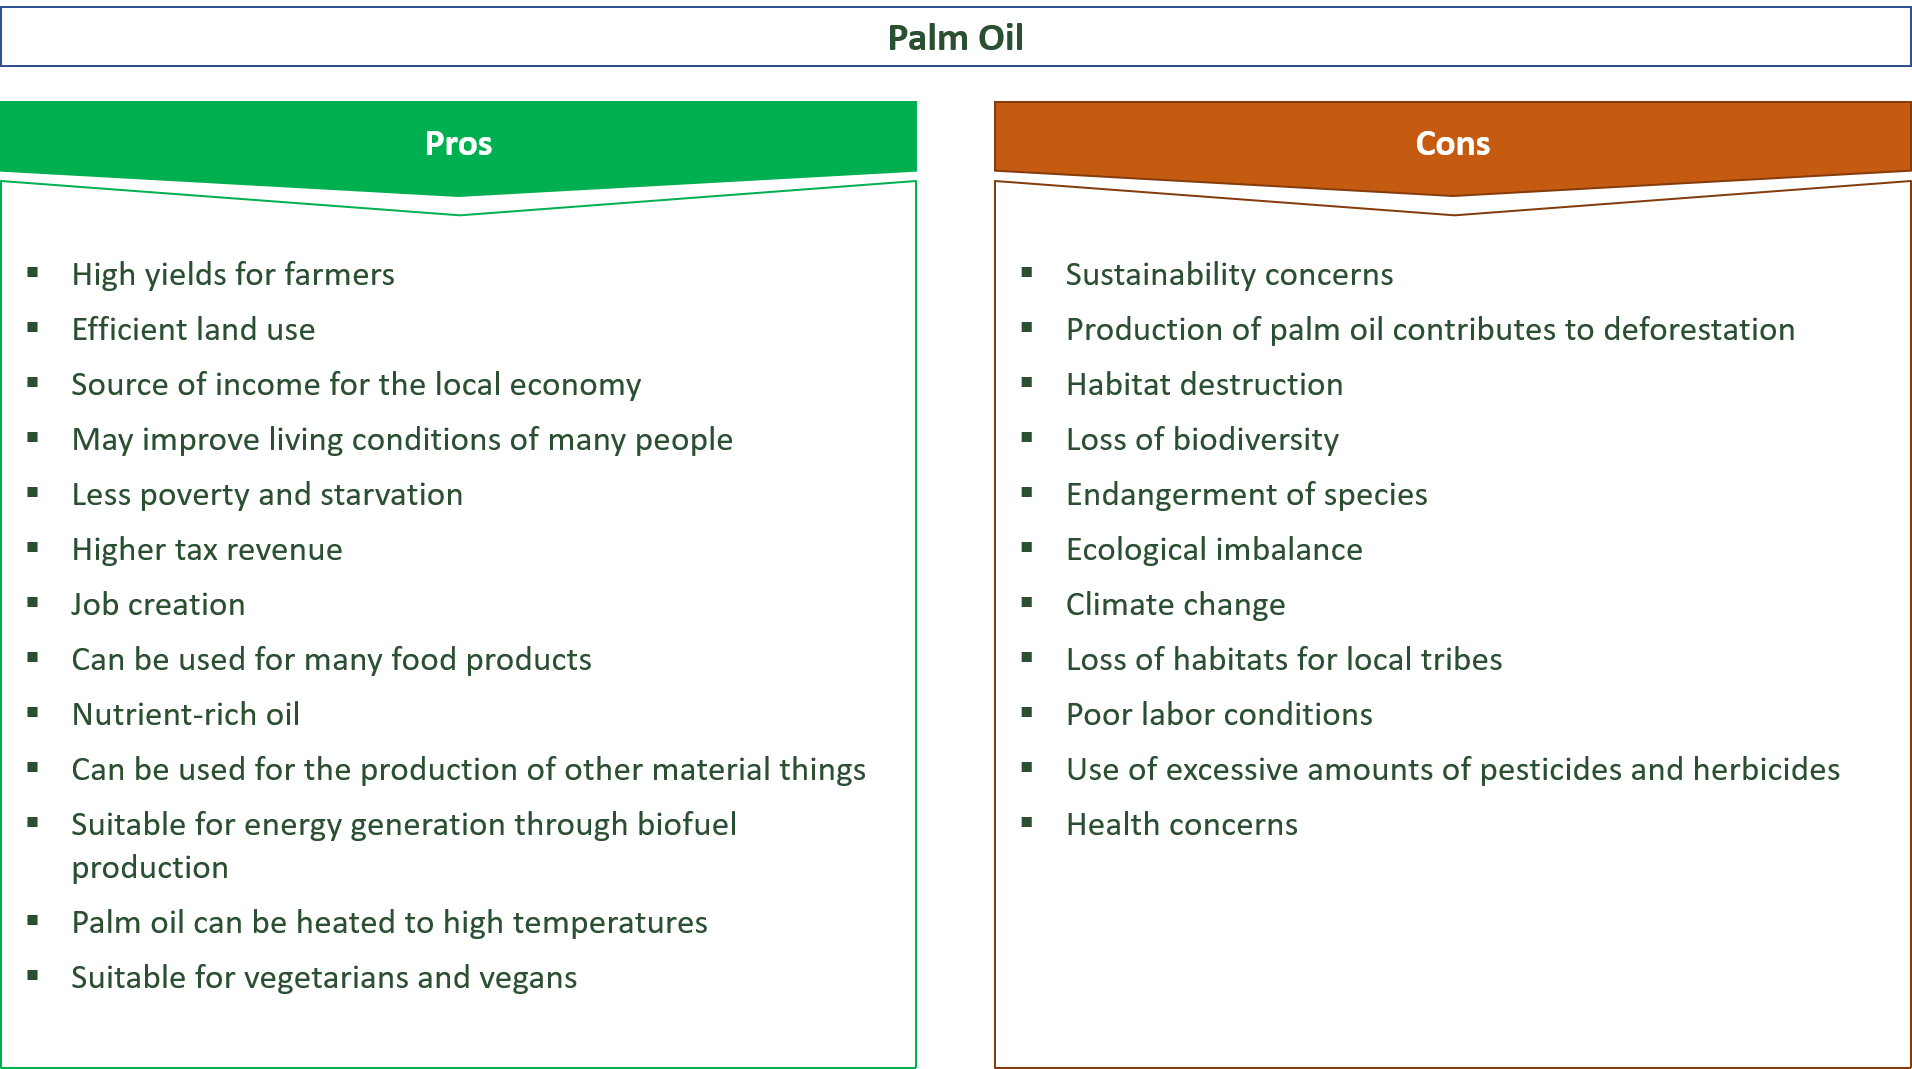 advantages and disadvantages of palm oil